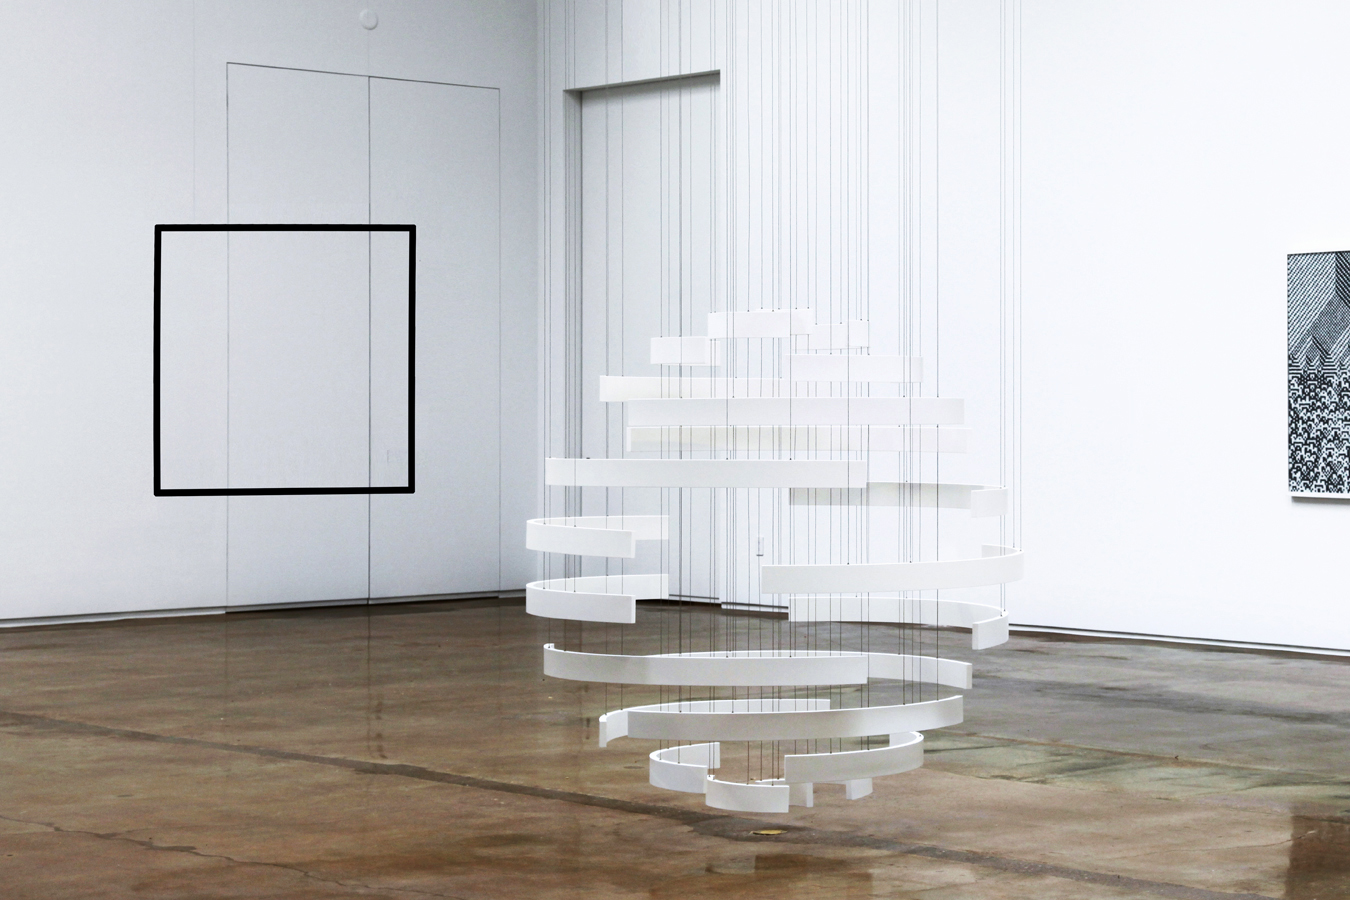 Troika, 'Cartography of Control', Installation View, Kohn Gallery, 2015